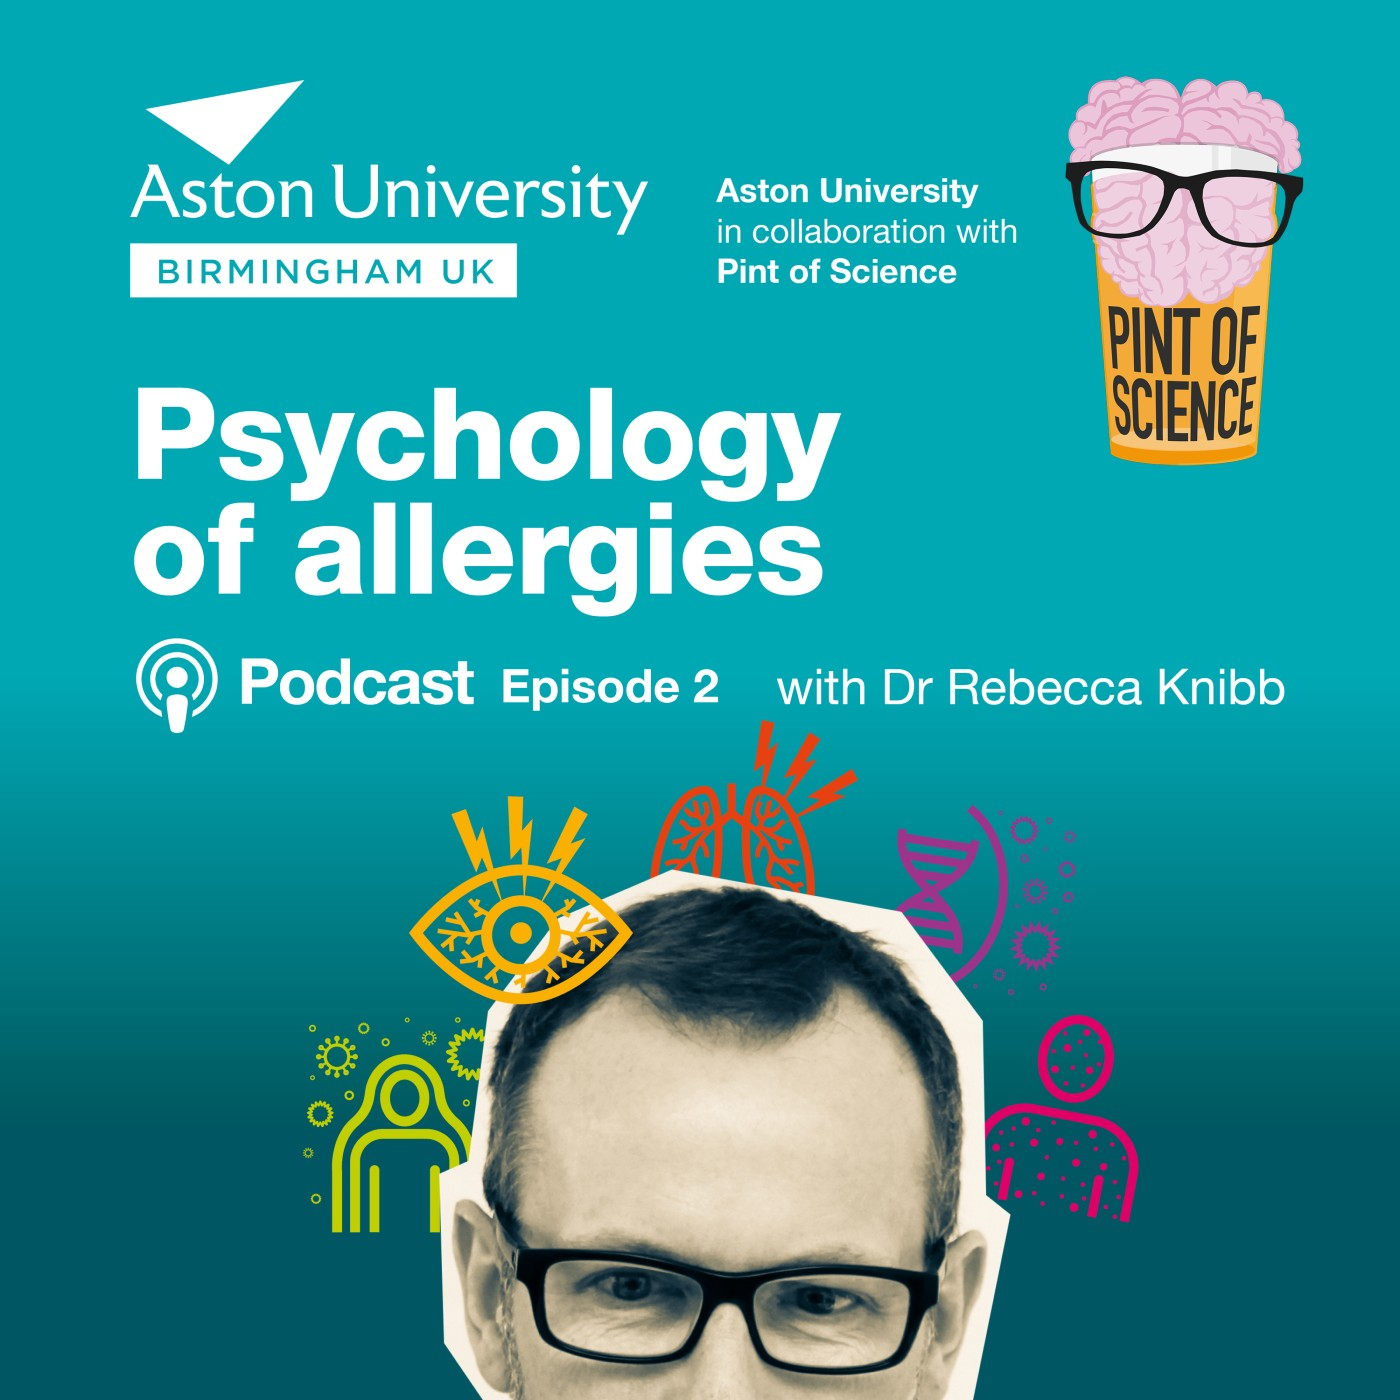 Pint of Aston: A Pint of Science mini-series. Episode 2: The Psychology of allergies with Dr Rebecca Knibb